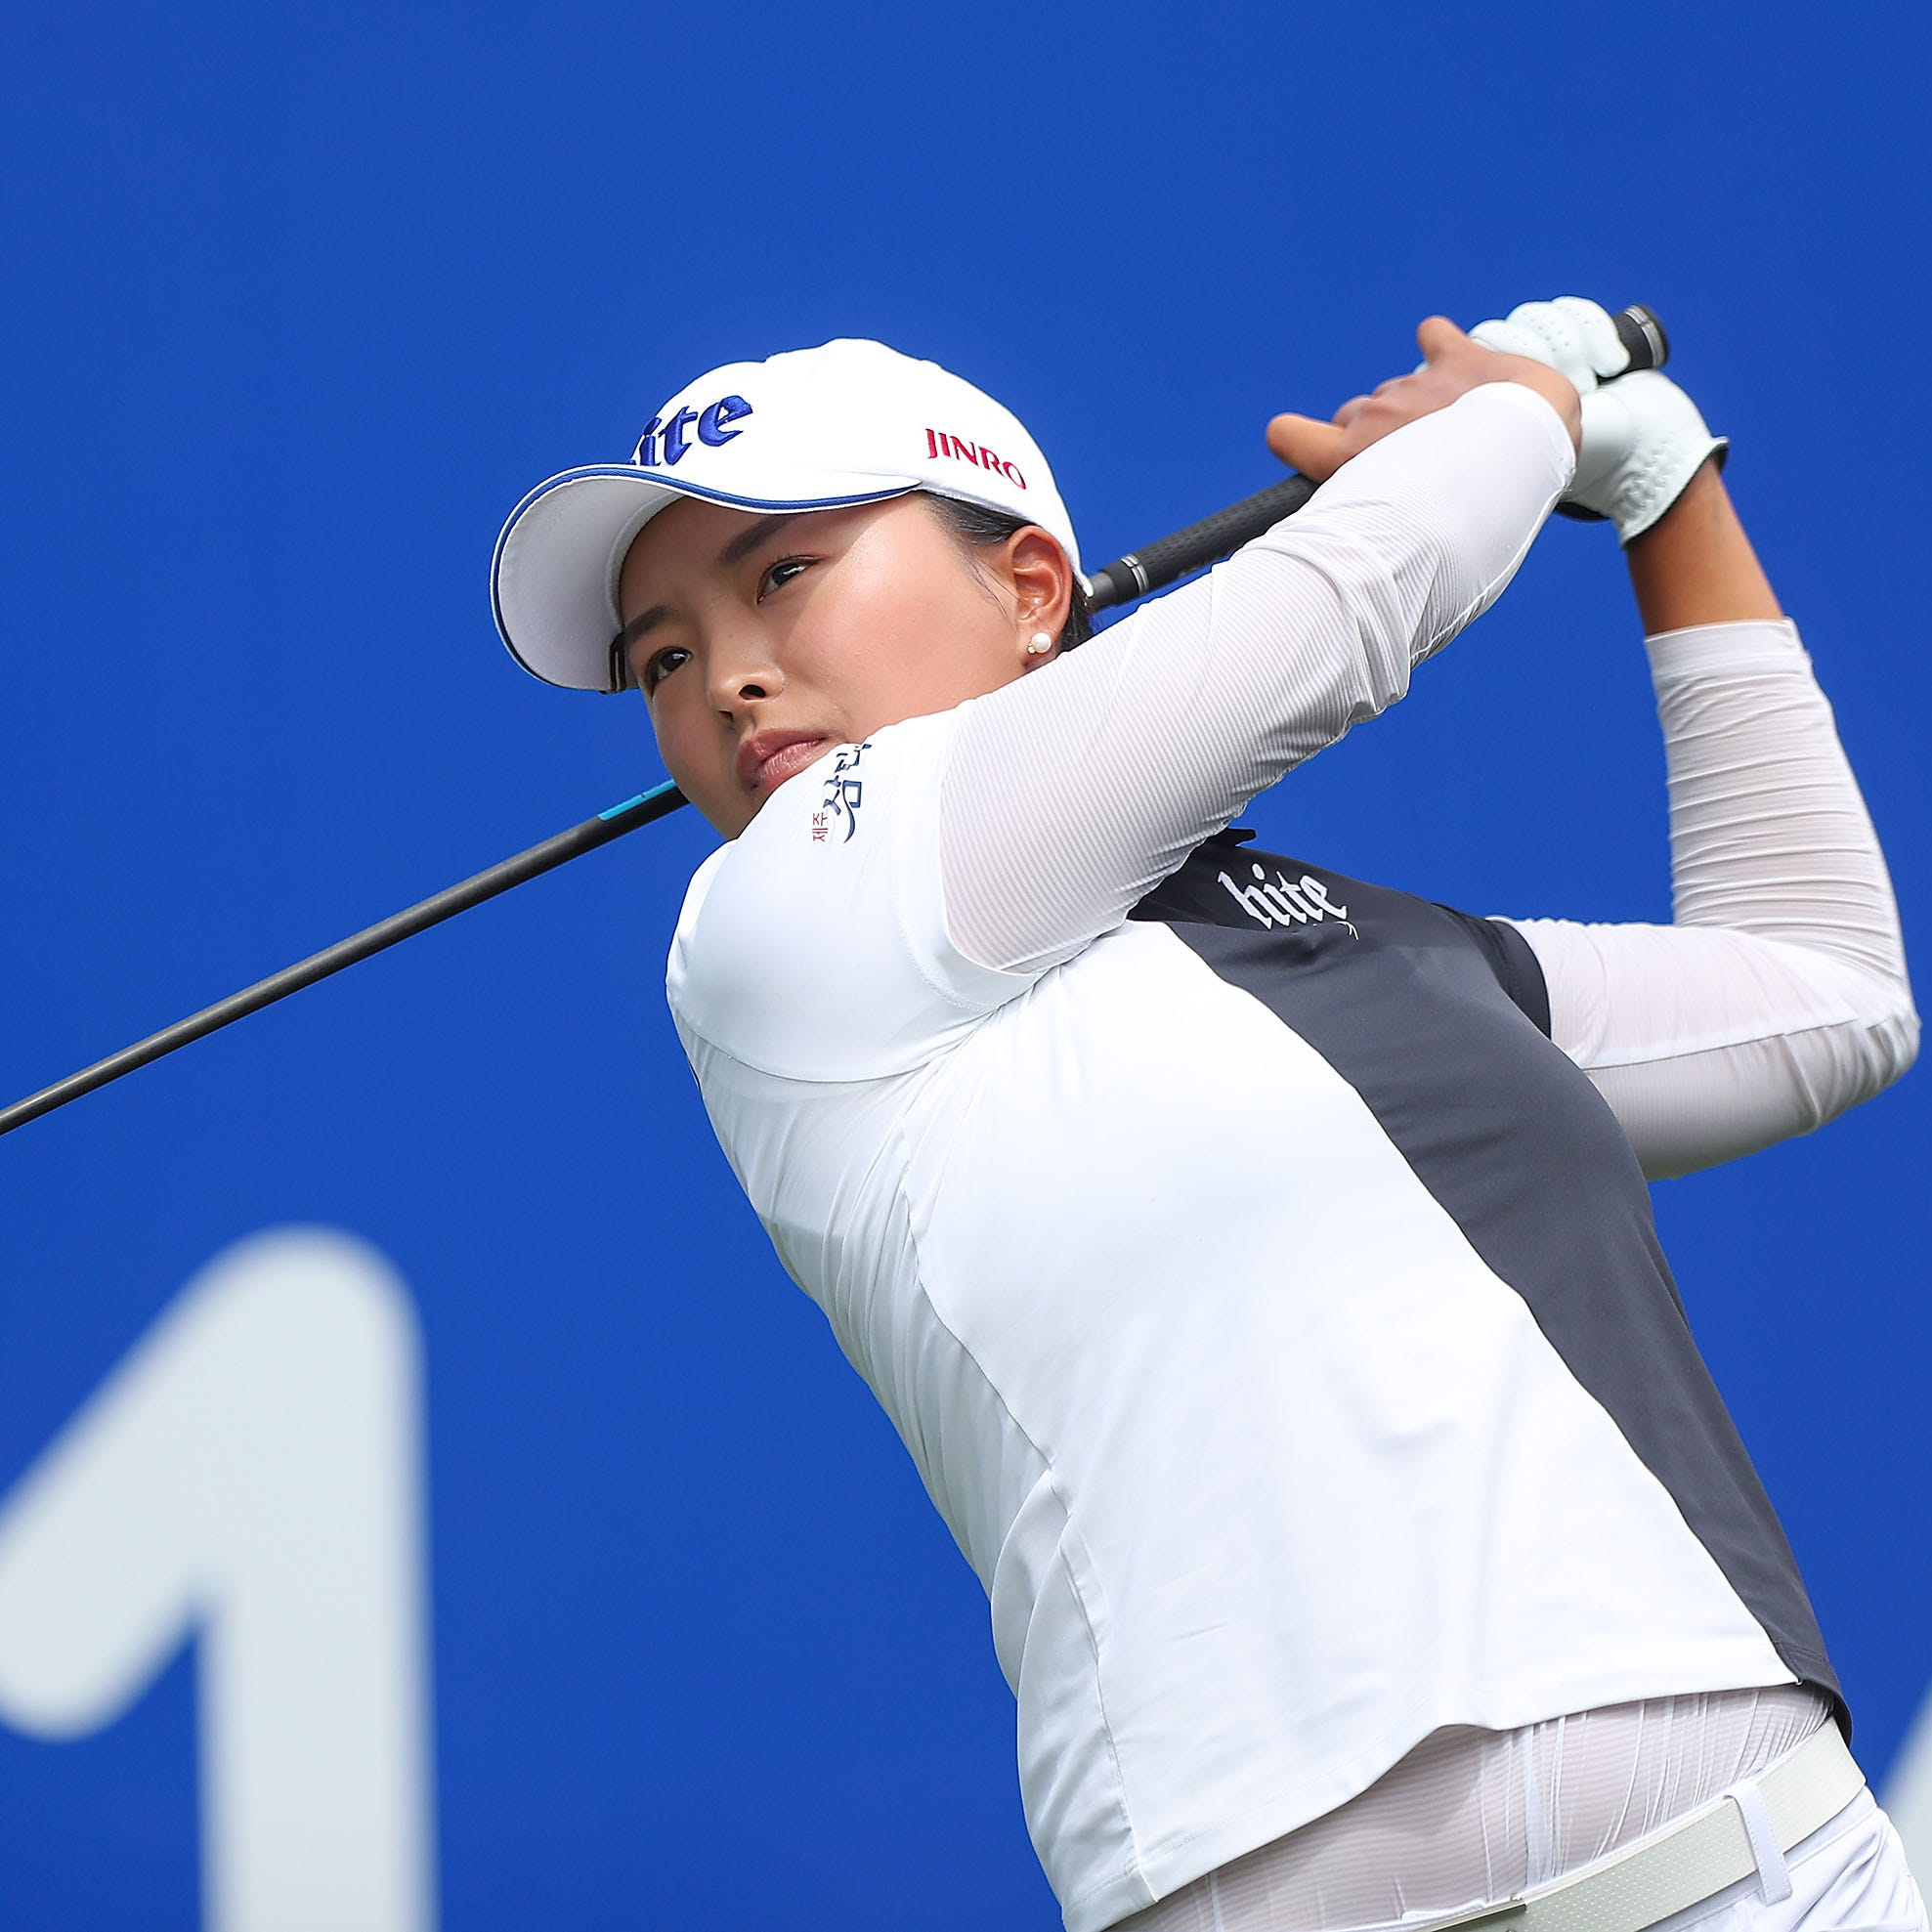 Major moment: Jin Young Ko continues hot streak with first major title at ANA Inspiration